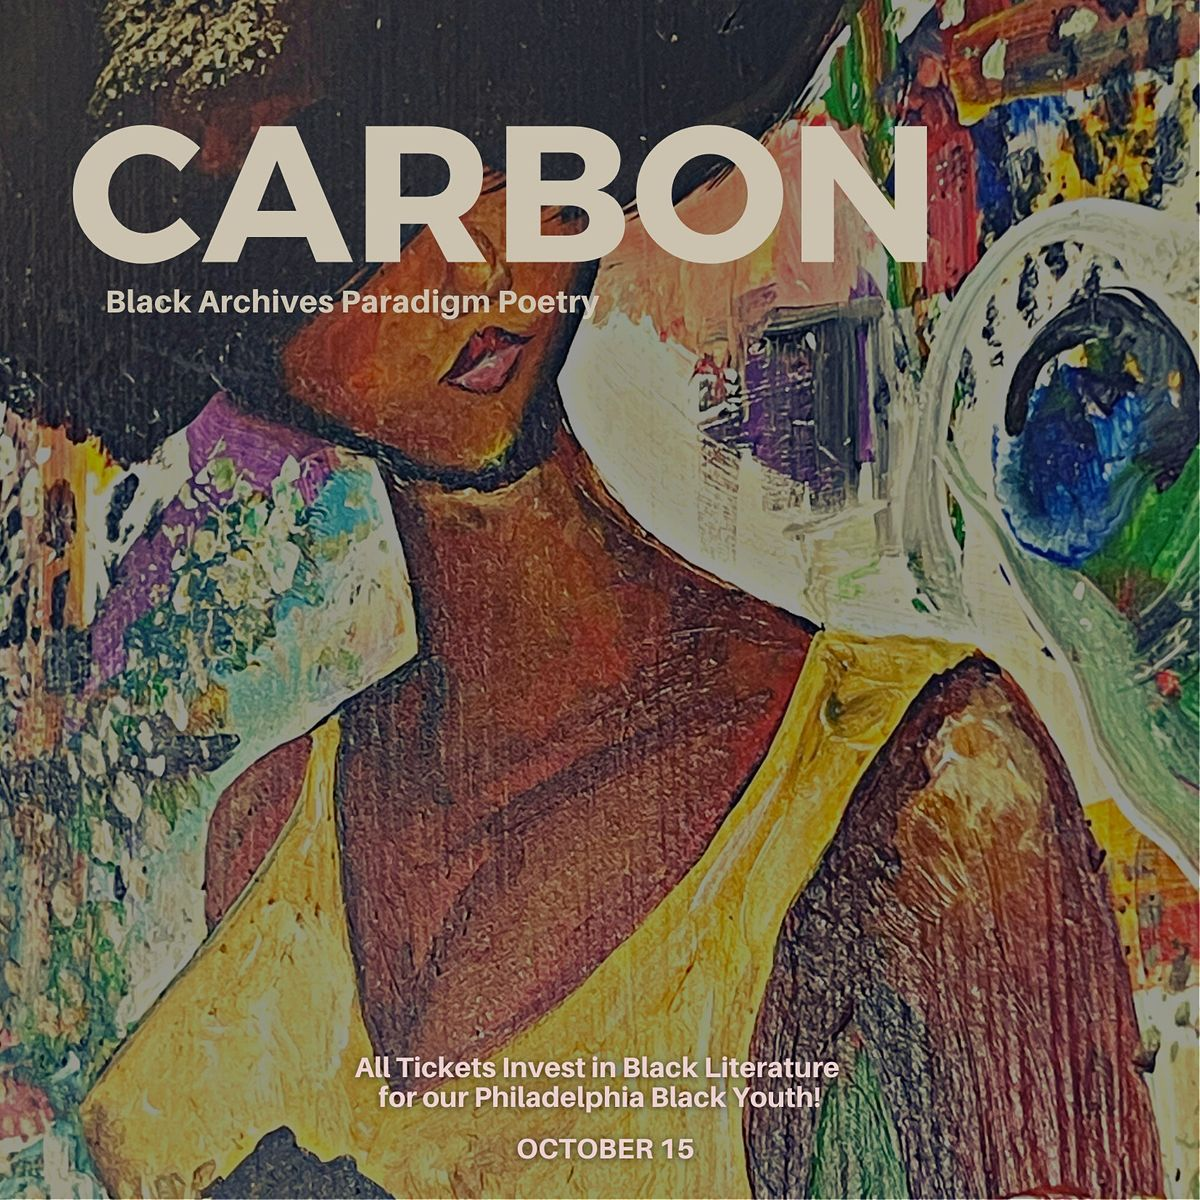 Carbon: The Black Archives Poetry Paradigm